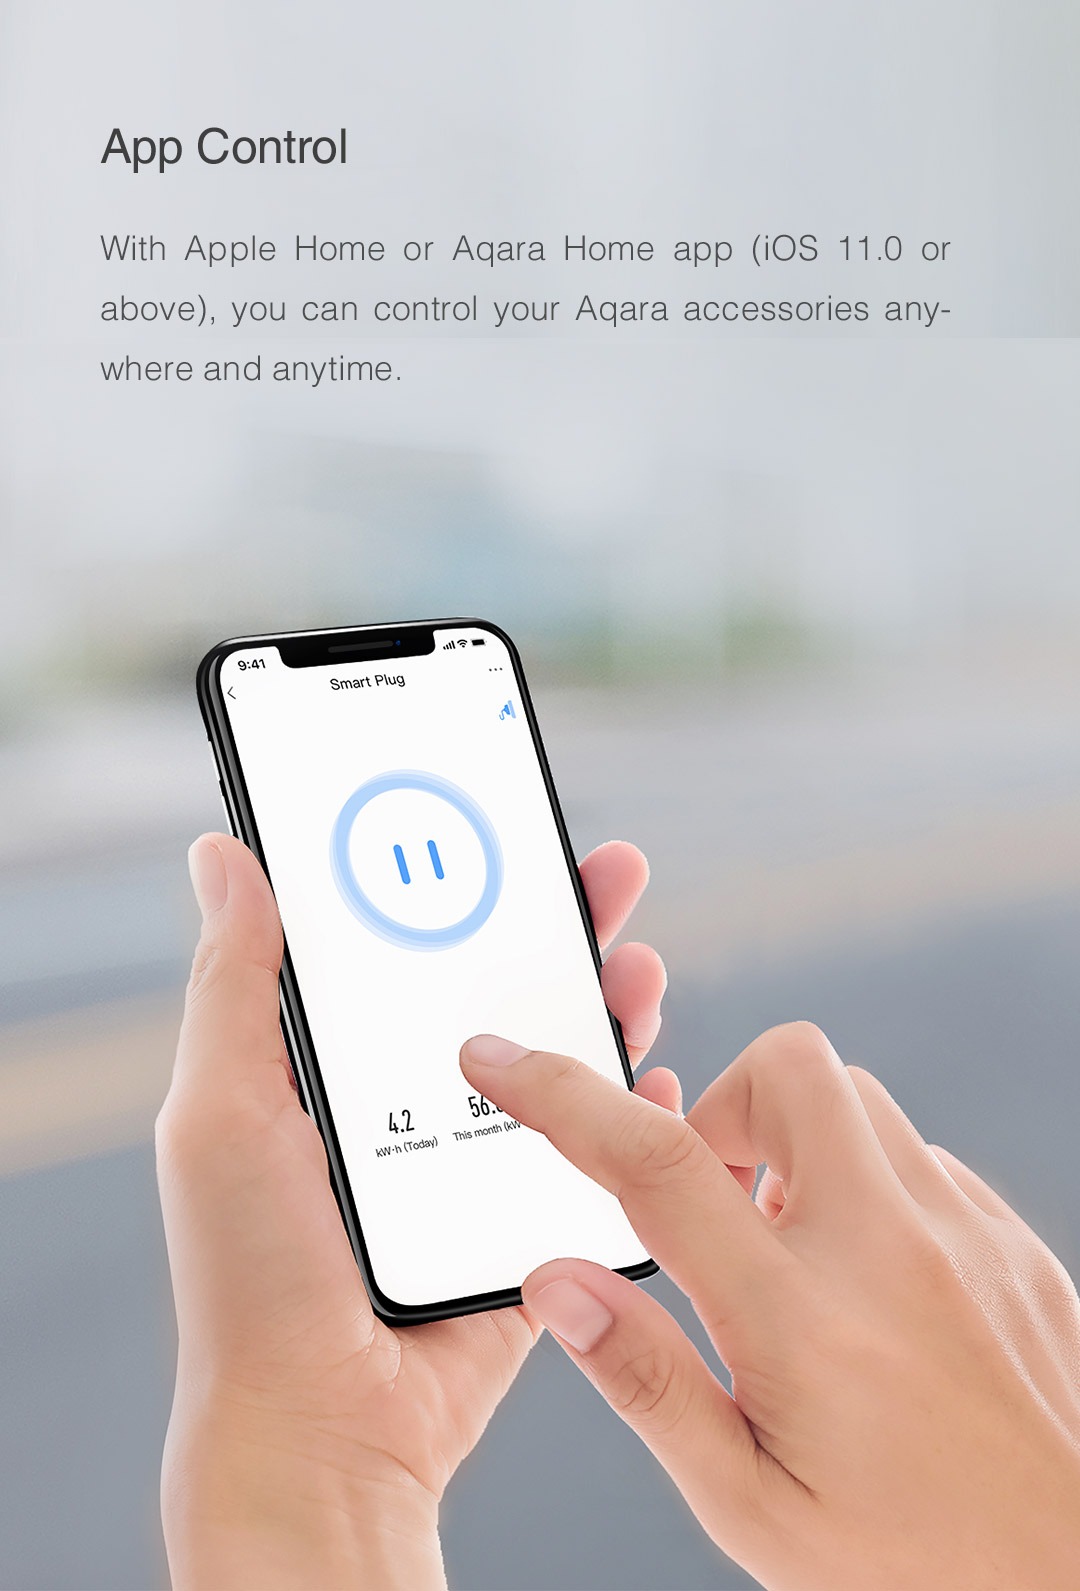 App remote control: you can control your Aqara accessories anywhere and anytime